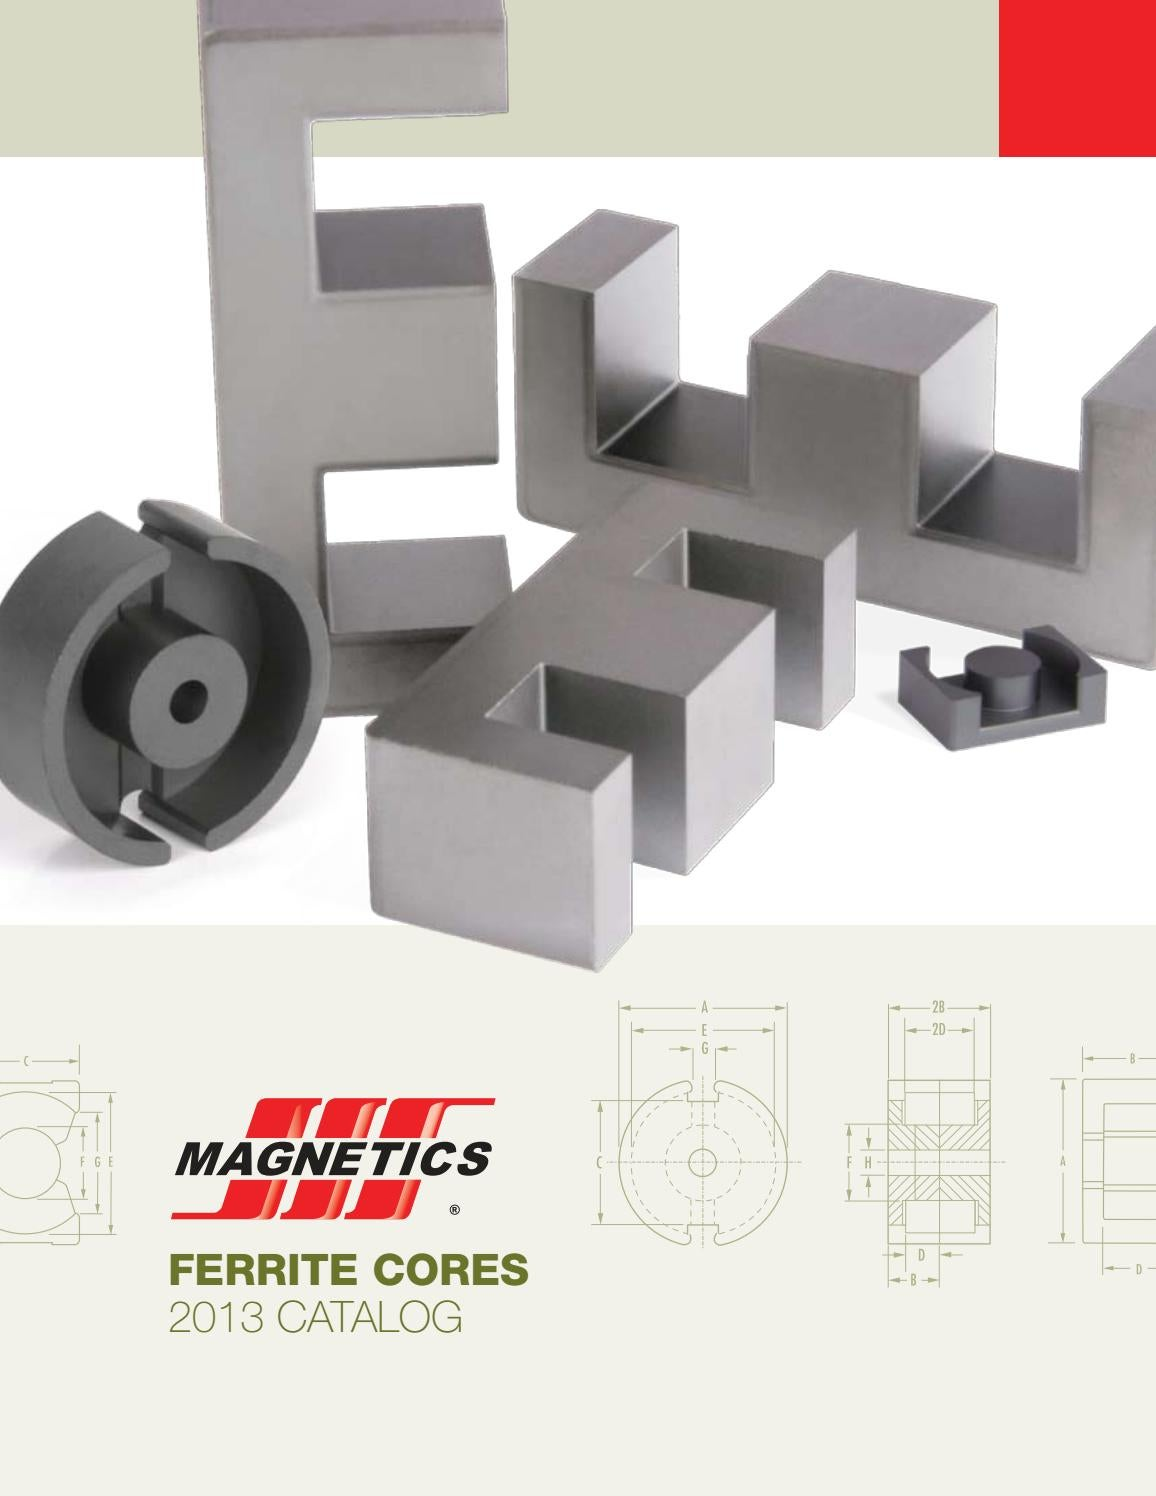 2013 Magnetics Ferrite Cores Catalog By Issuu Magnetic Circuit Of An Inductor With Ungapped Core